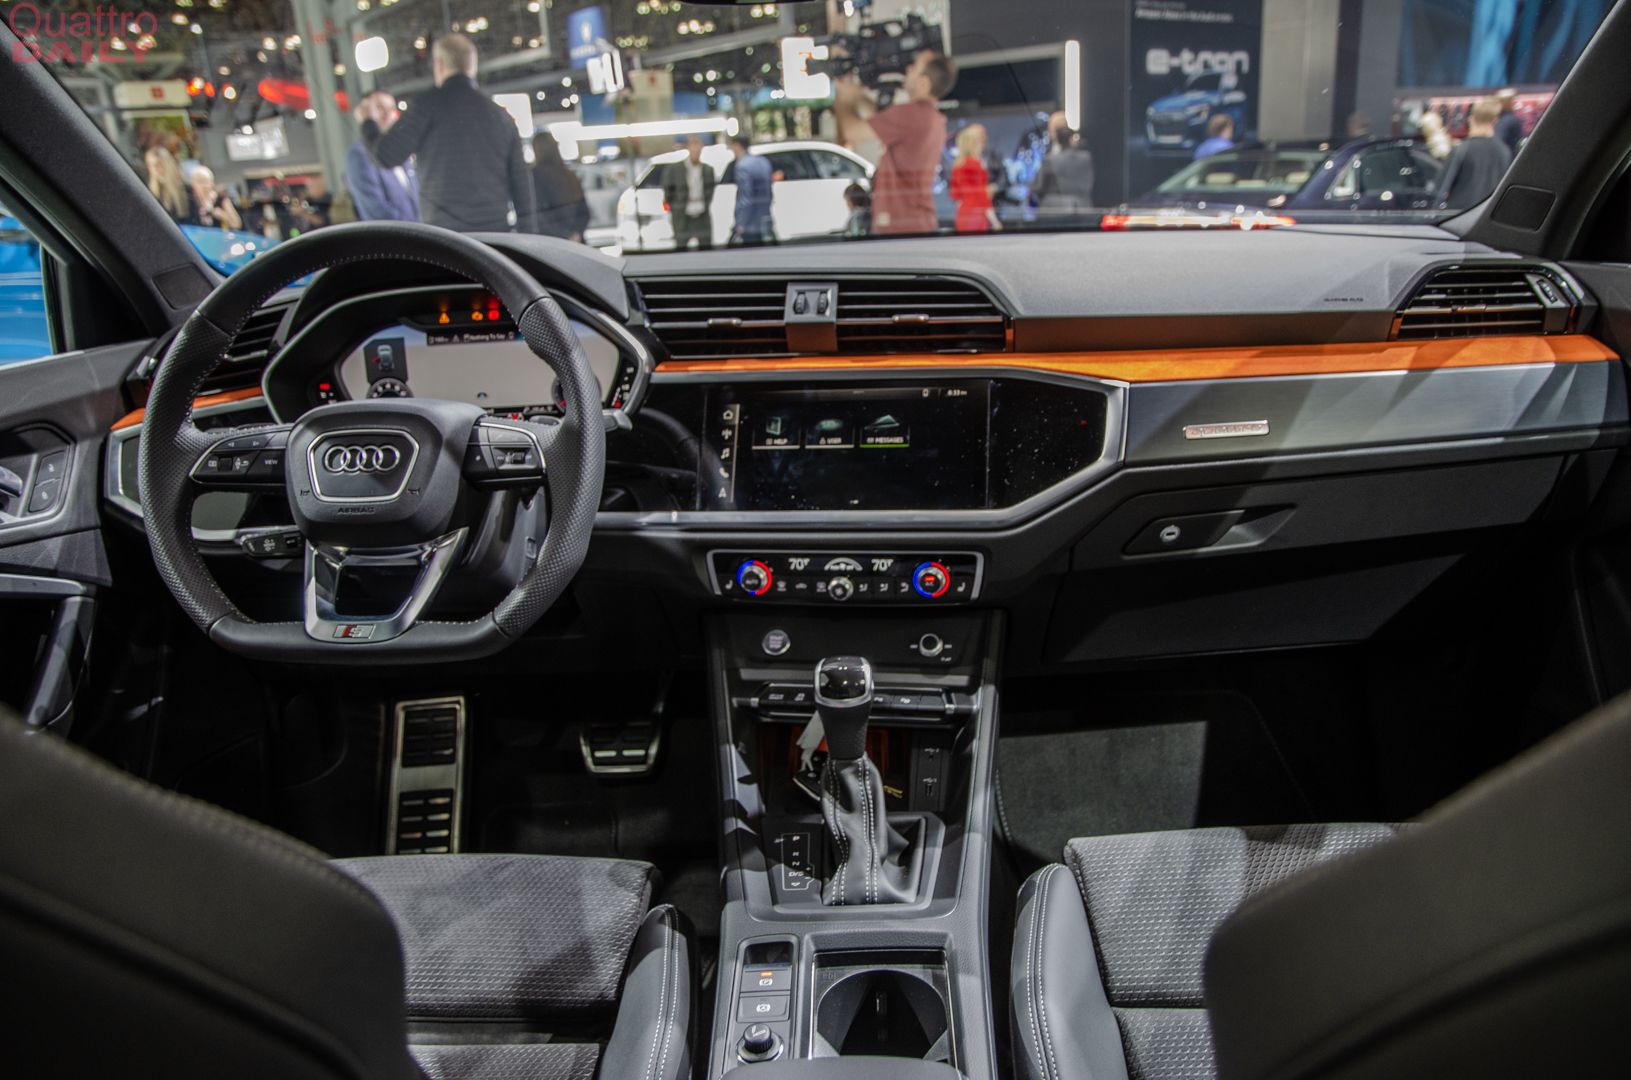 2019 NY Auto Show: 2019 Audi Q3 is here to take on the BMW X1